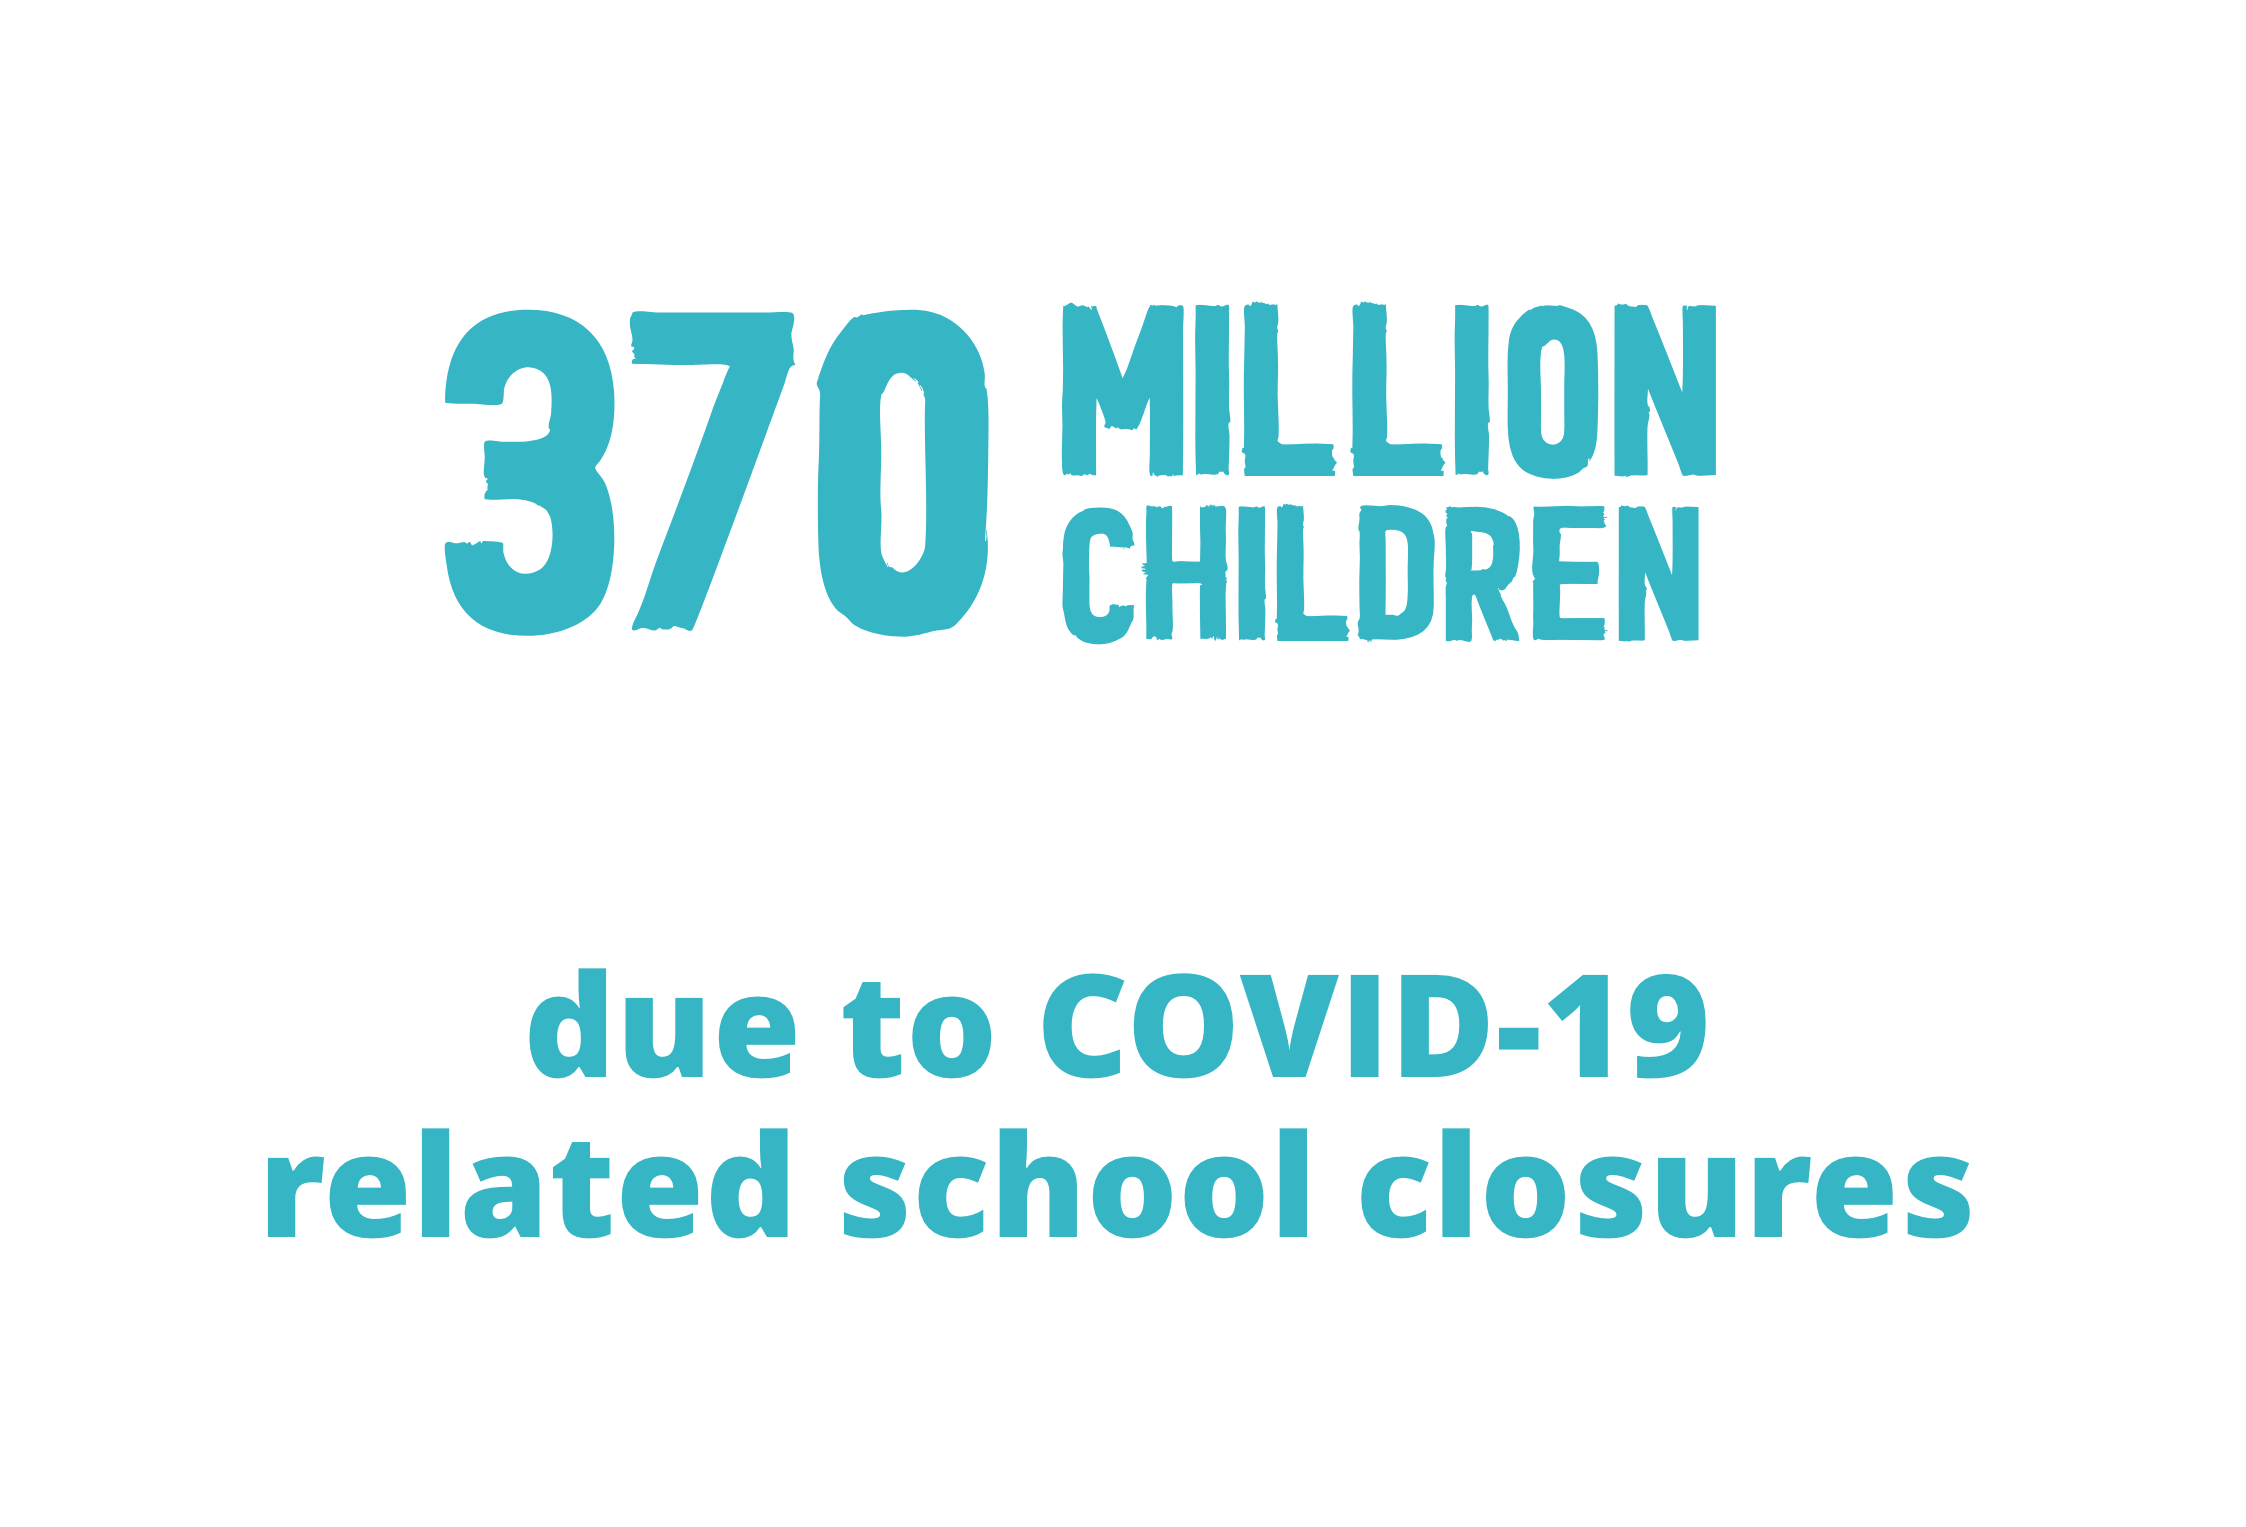 370 million children missed school meals due to COVID-19 related school closures